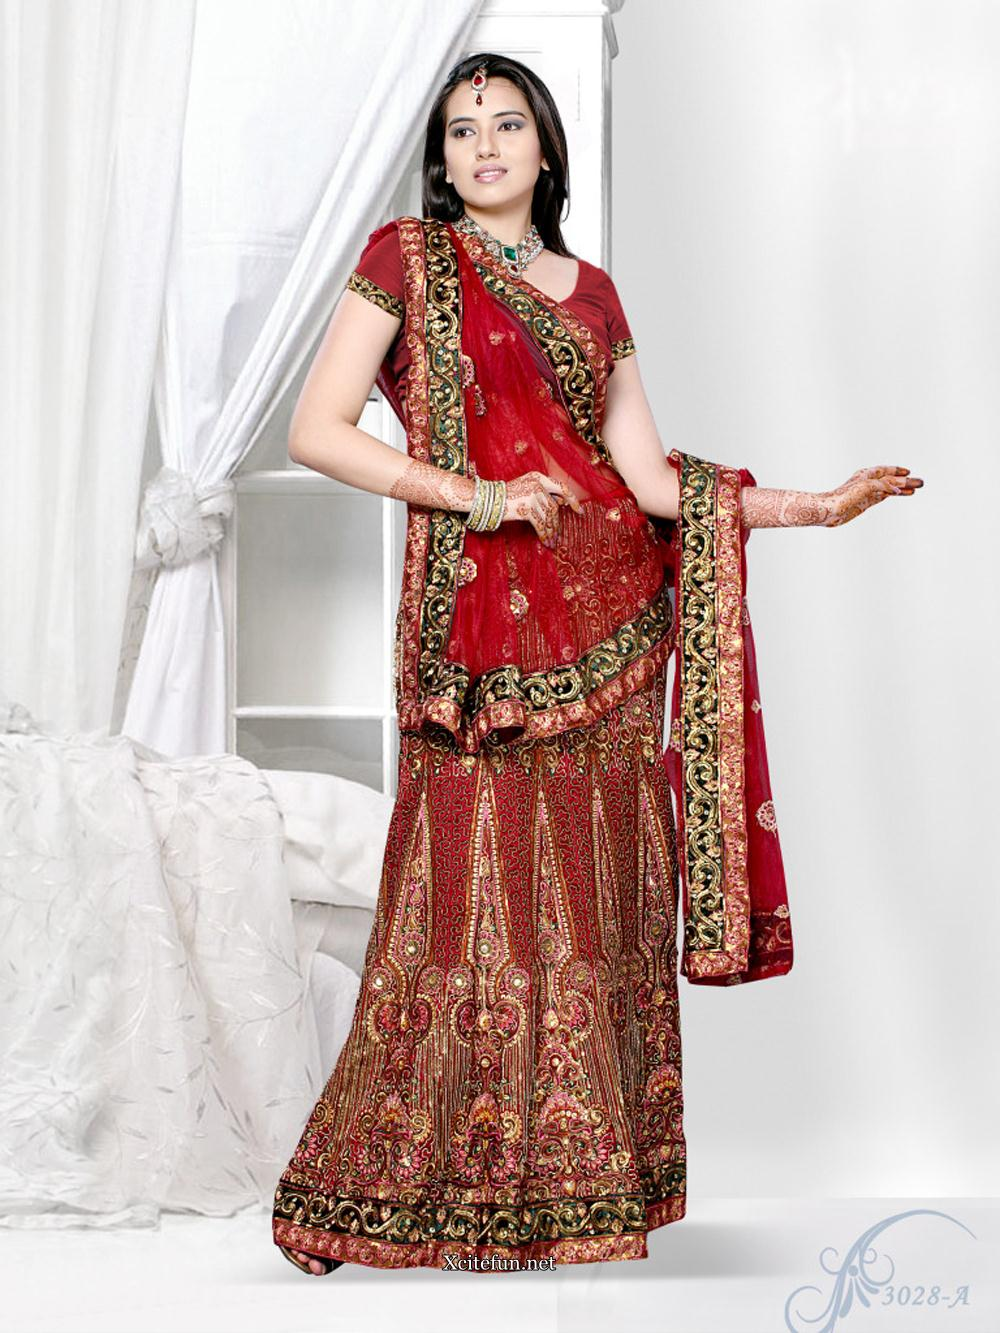 Bridal Red Lehenga Choli  XciteFunnet